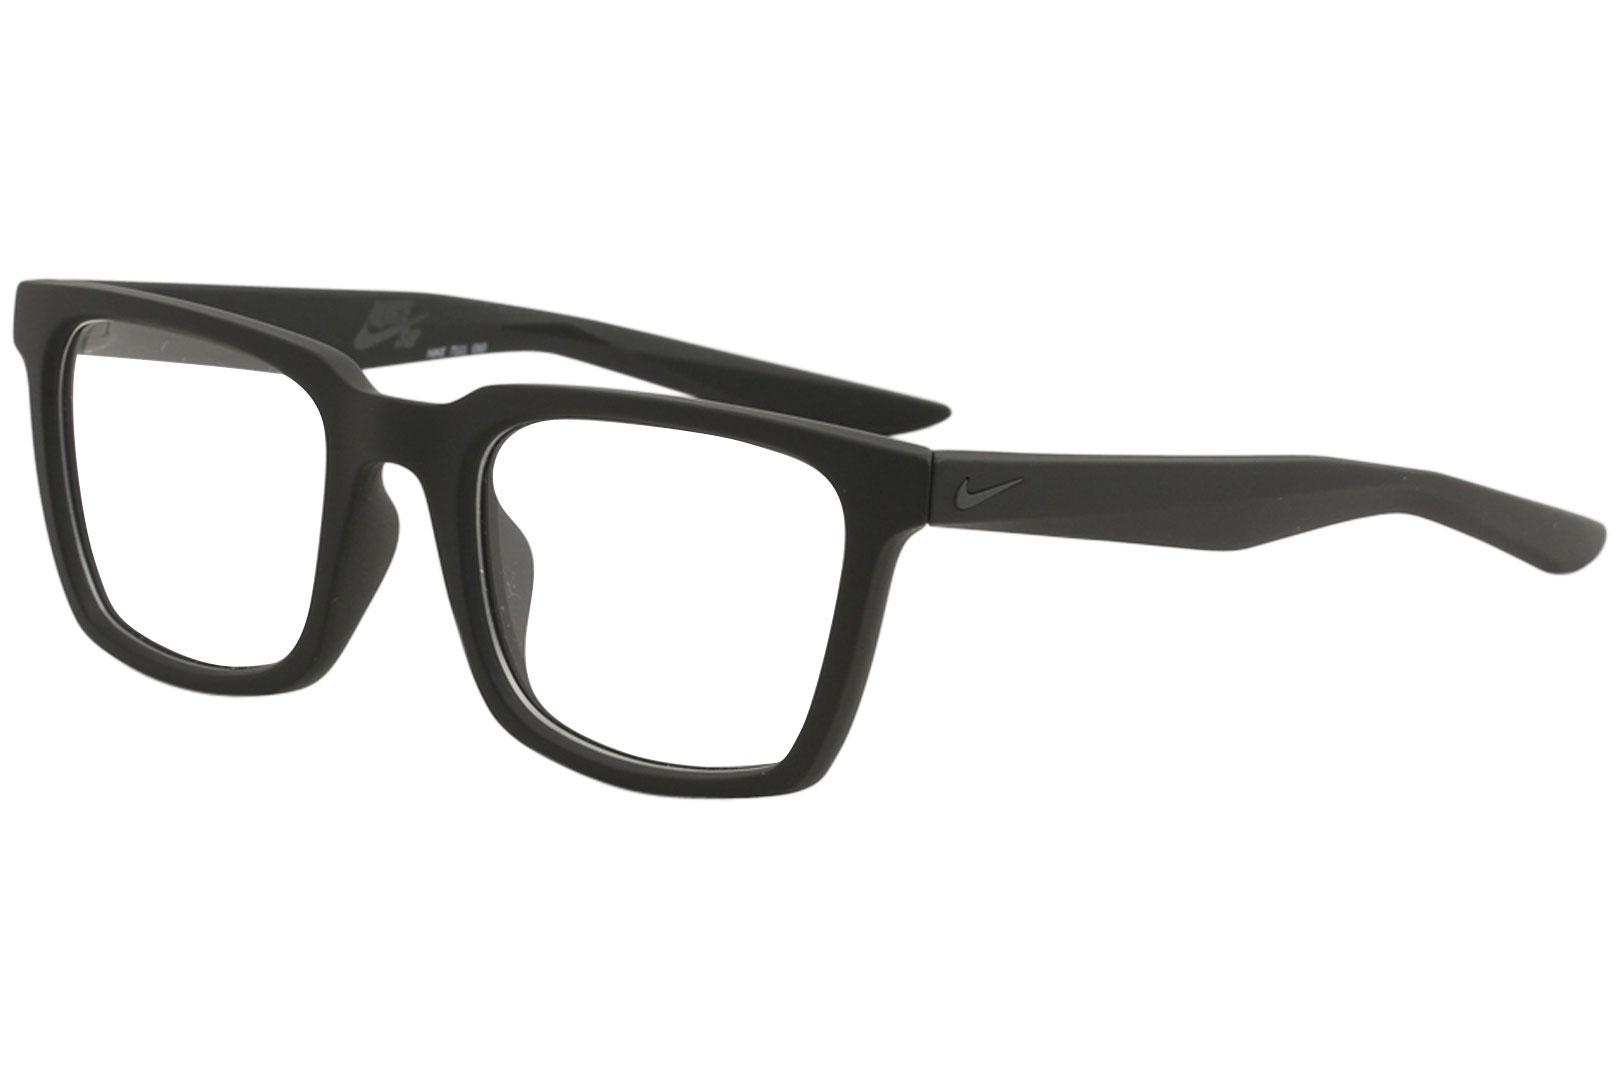 14df7378ec Nike SB Men s Eyeglasses 7111 Full Rim Optical Frame by Nautica